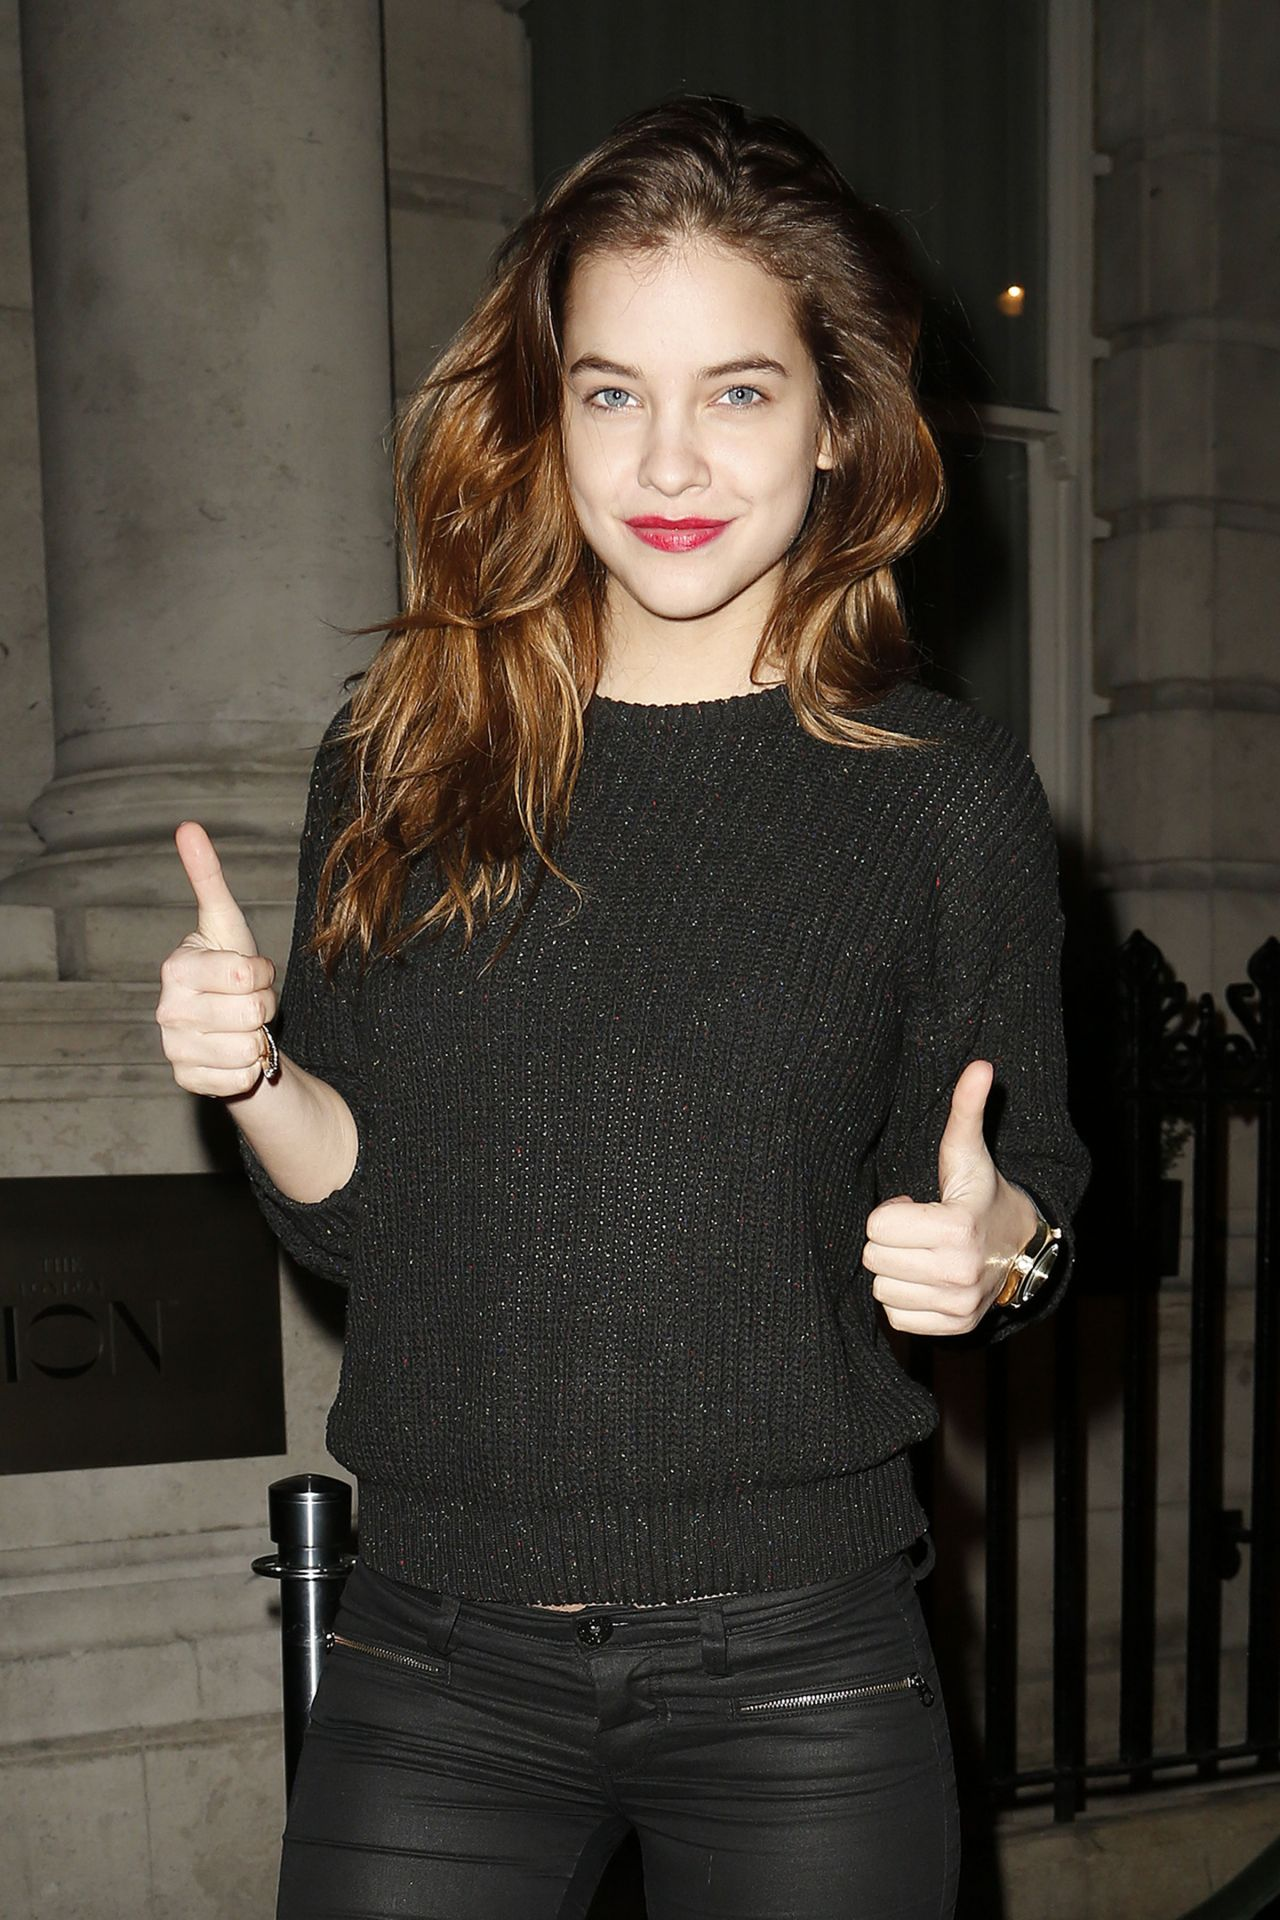 Barbara Palvin - Edition Hotel Bar in London - February 2014